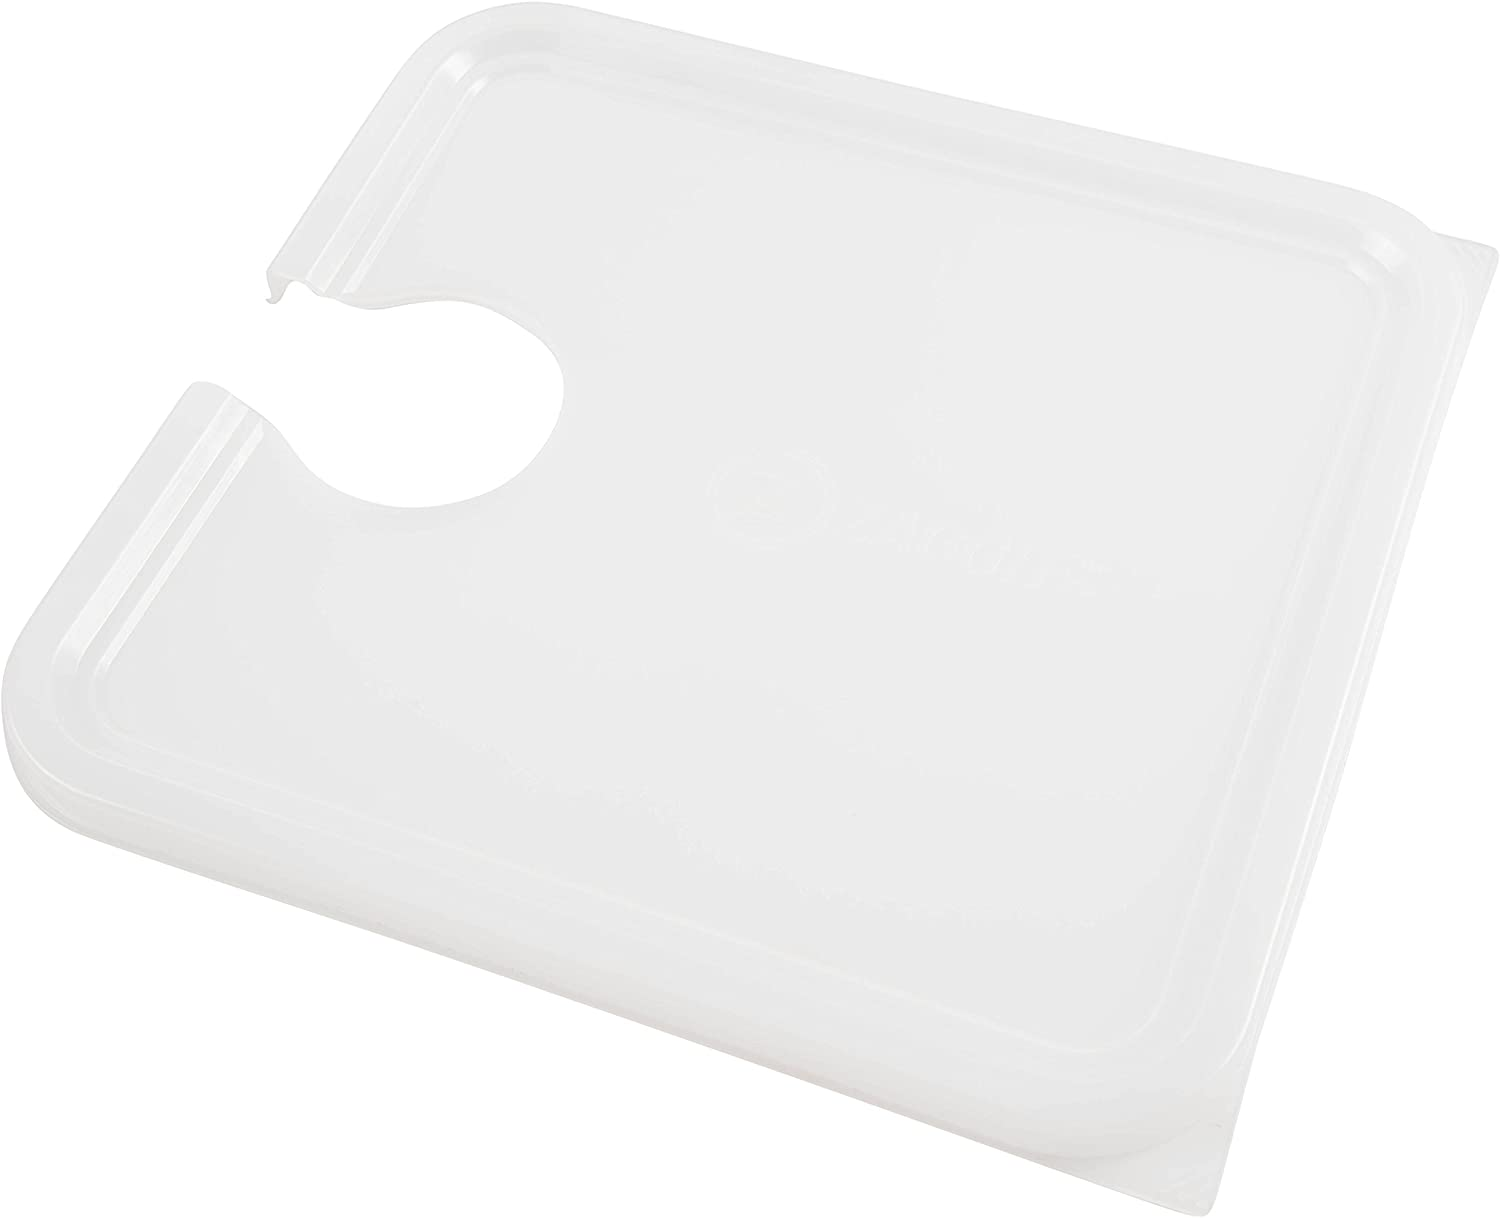 Zaggit Sous Vide Lid for Anova Culinary Precision Cookers fits 12 18 /& 22 Quart Rubbermaid Containers